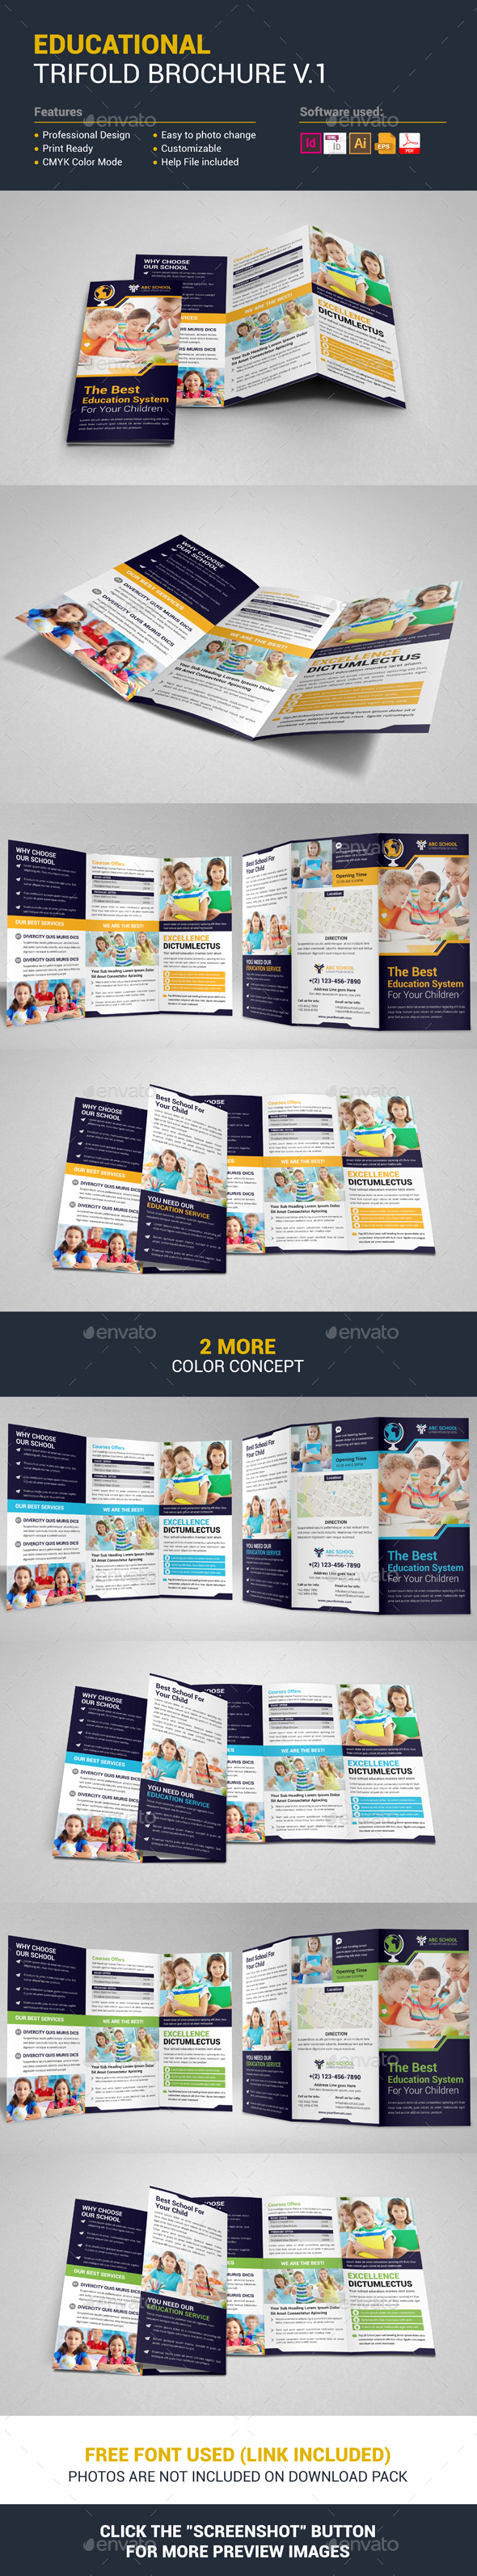 Educational Trifold Brochure Template Vector EPS InDesign INDD - Indesign trifold brochure template